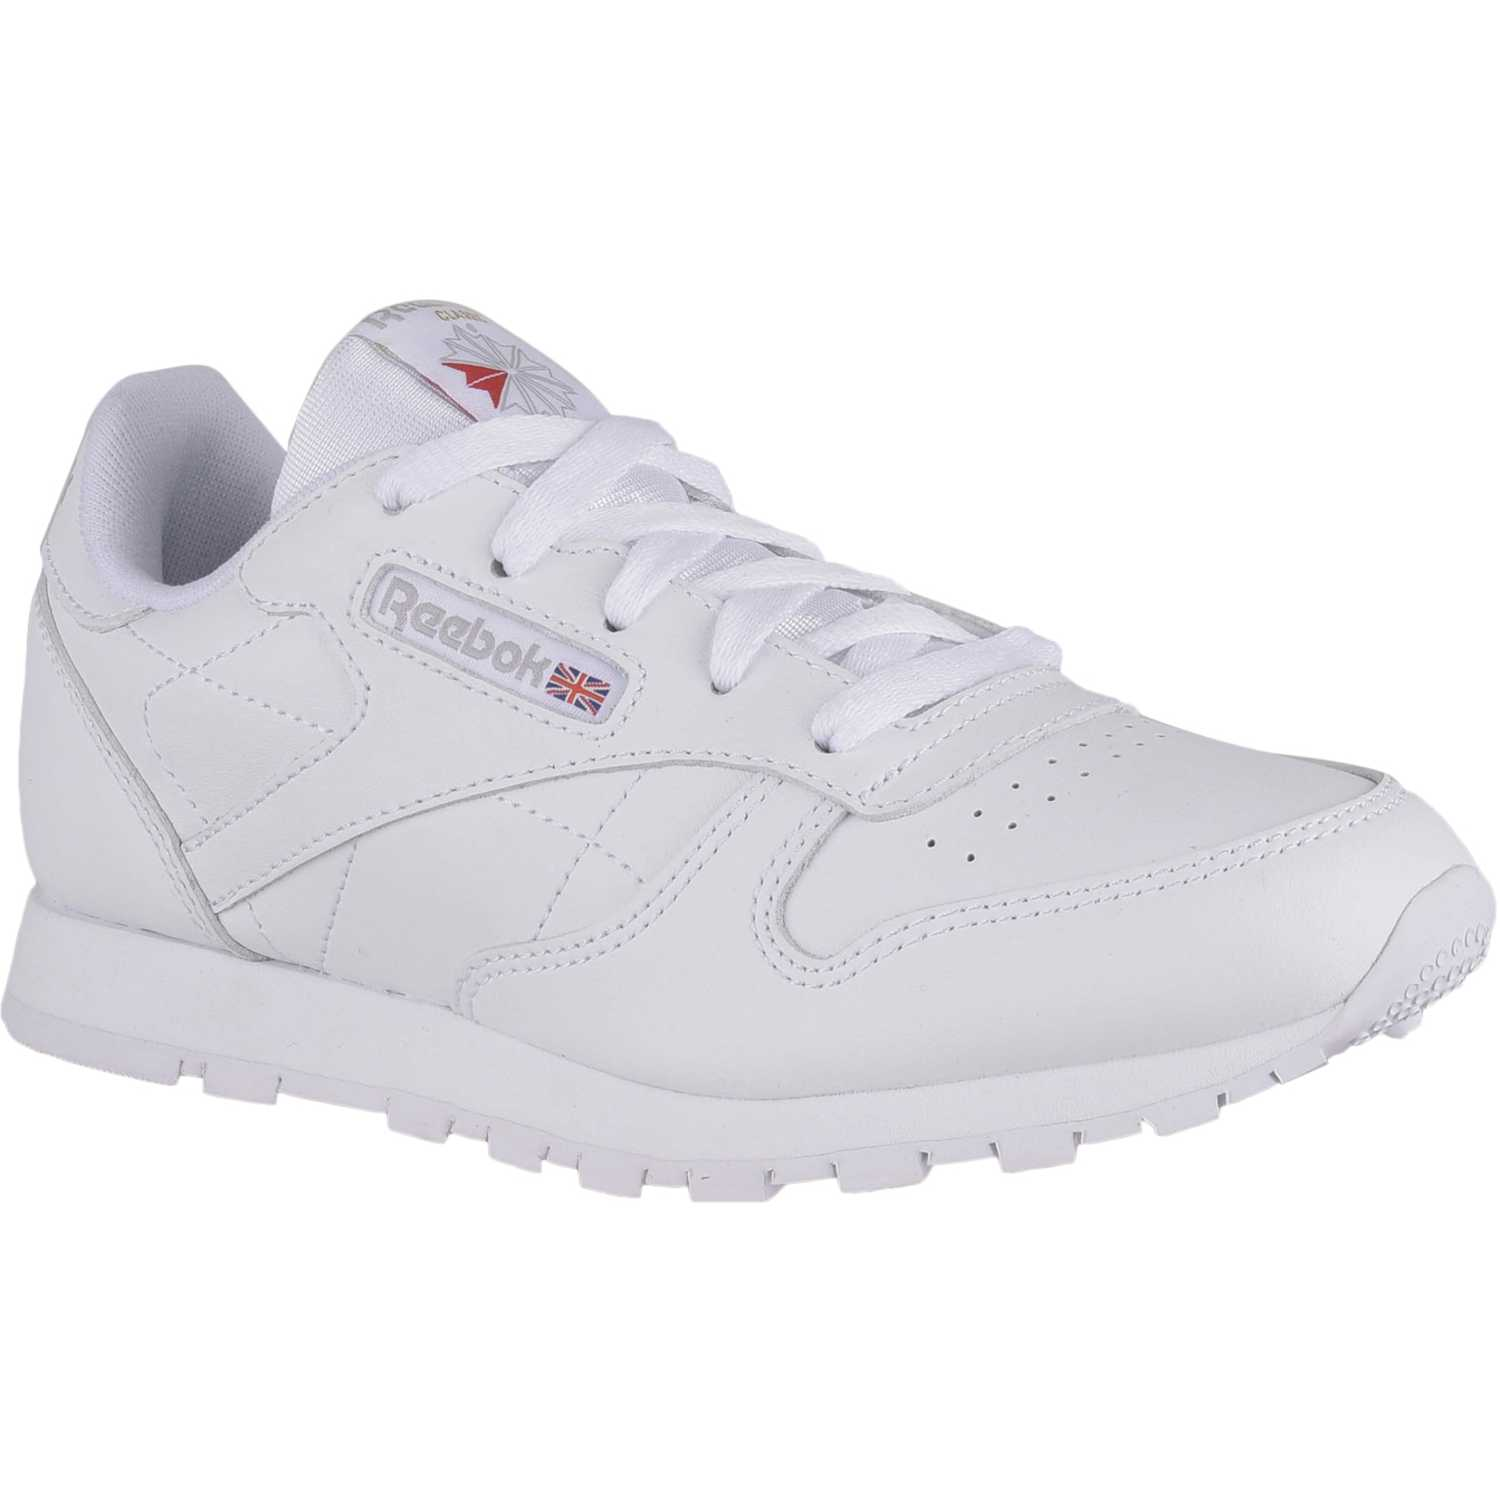 Zapatilla de Niño Reebok Blanco classic leather